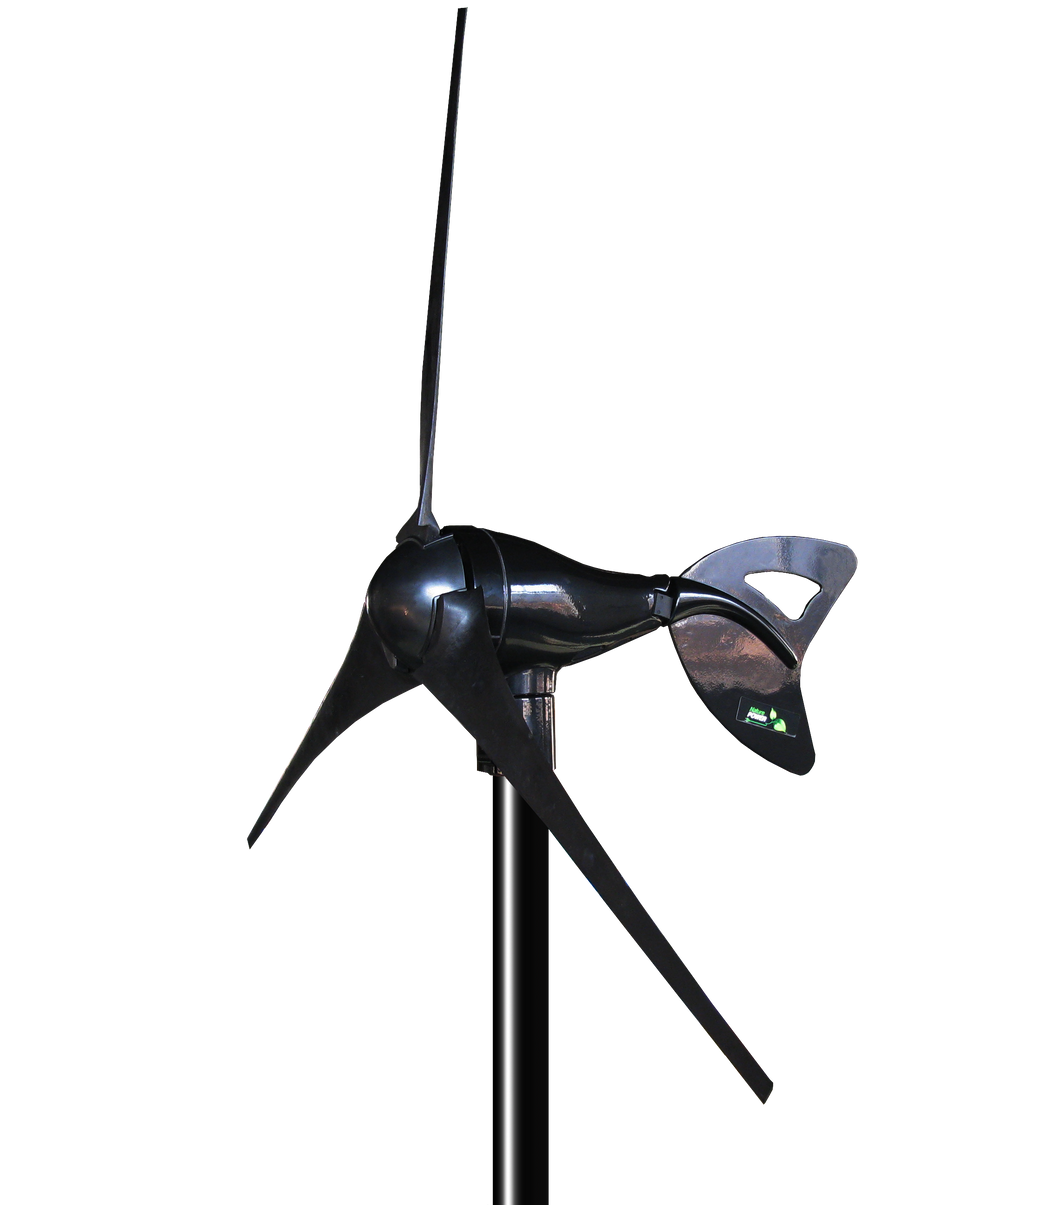 400-Watt Wind Turbine Power Generator for 12-Volt Systems - Ecowareness